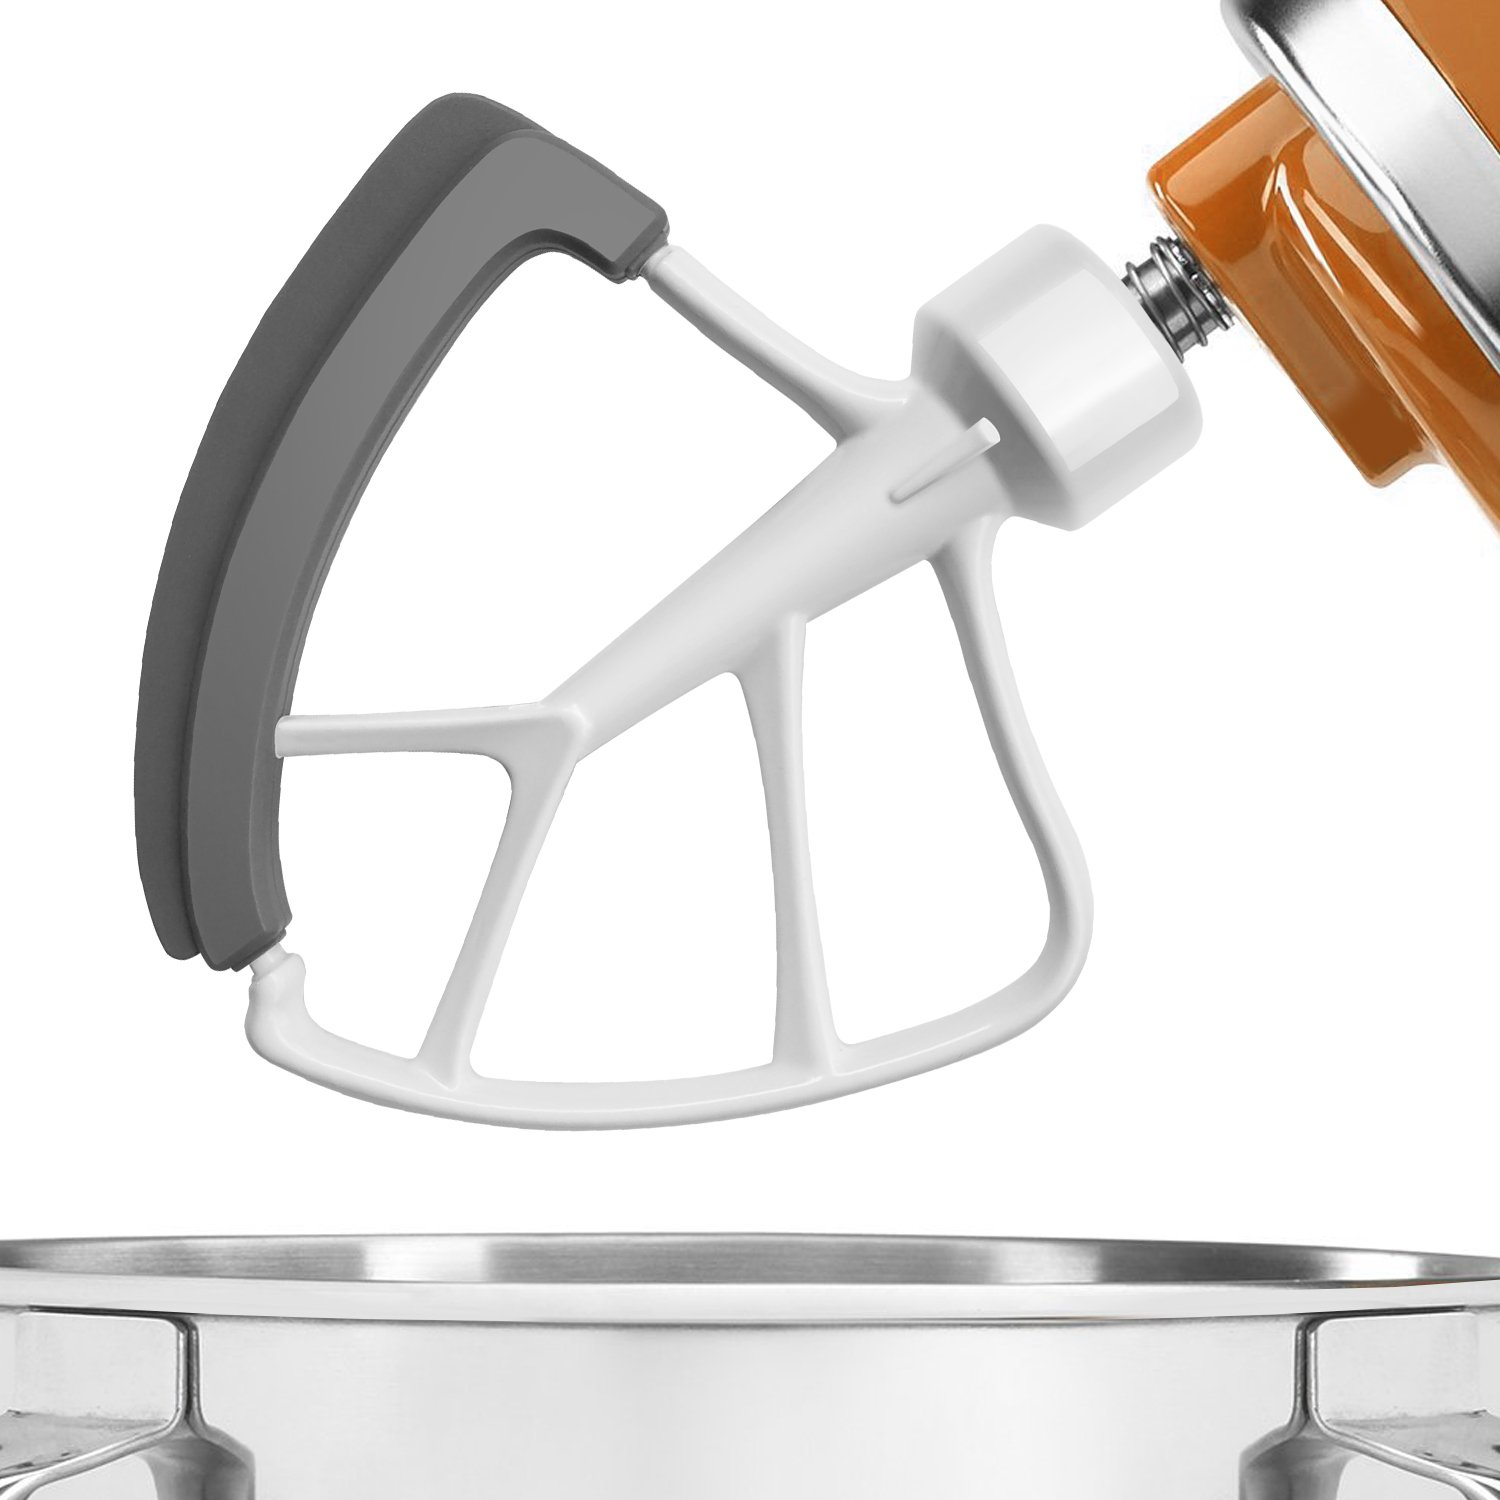 KITCHPOWER 4.5-5 Quart Flex Edge Beater for KitchenAid Tilt-Head Stand Mixers by KITCHPOWER (Image #3)